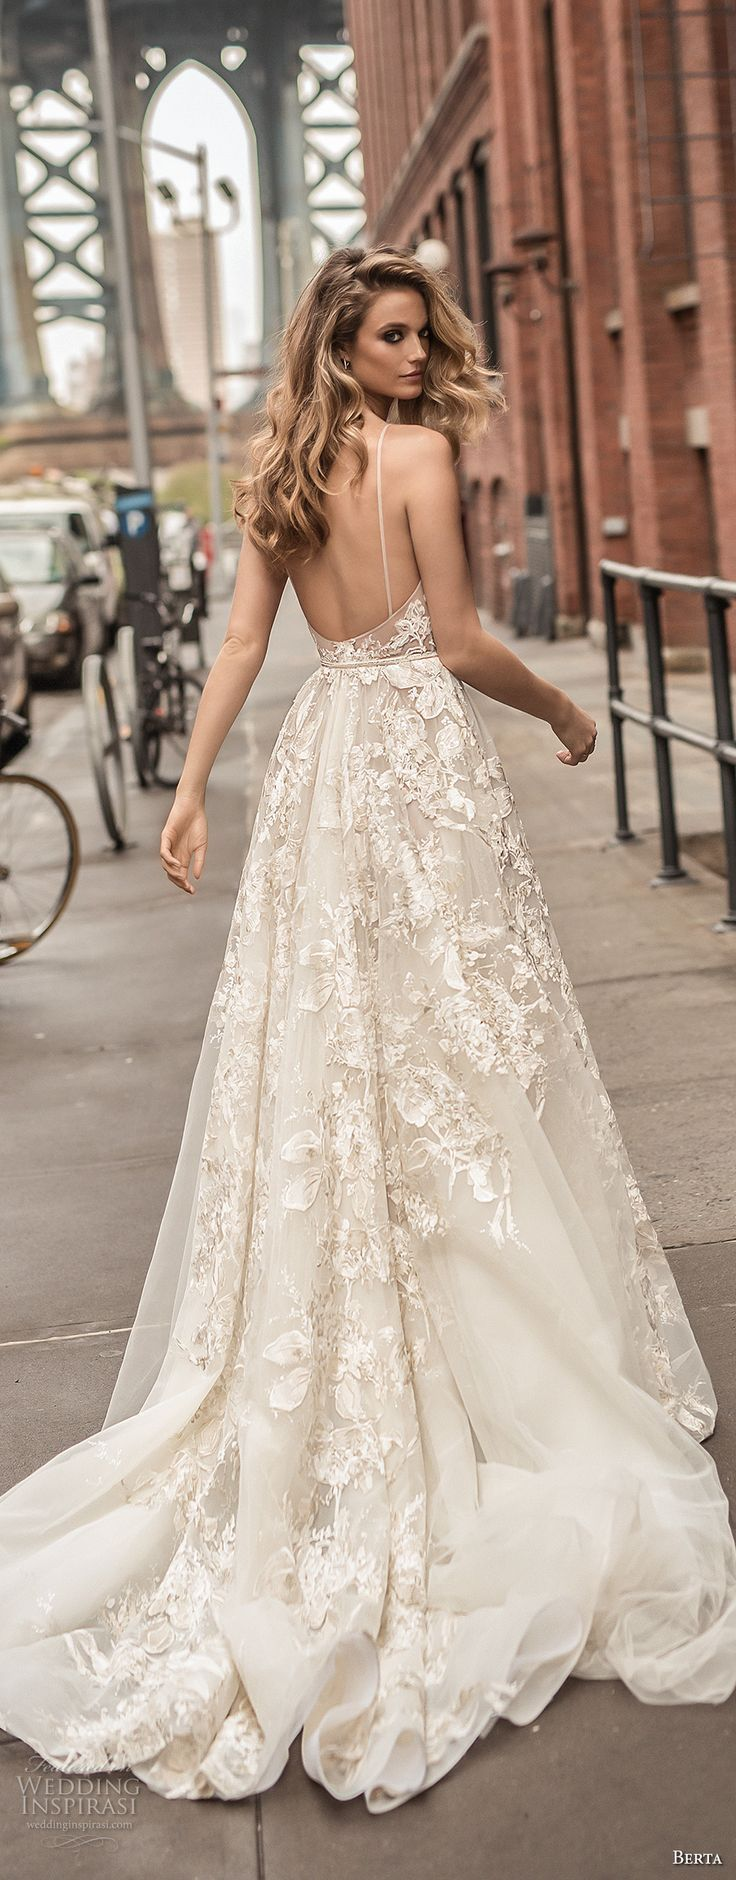 Berta spring wedding dresses u campaign photos chapel train